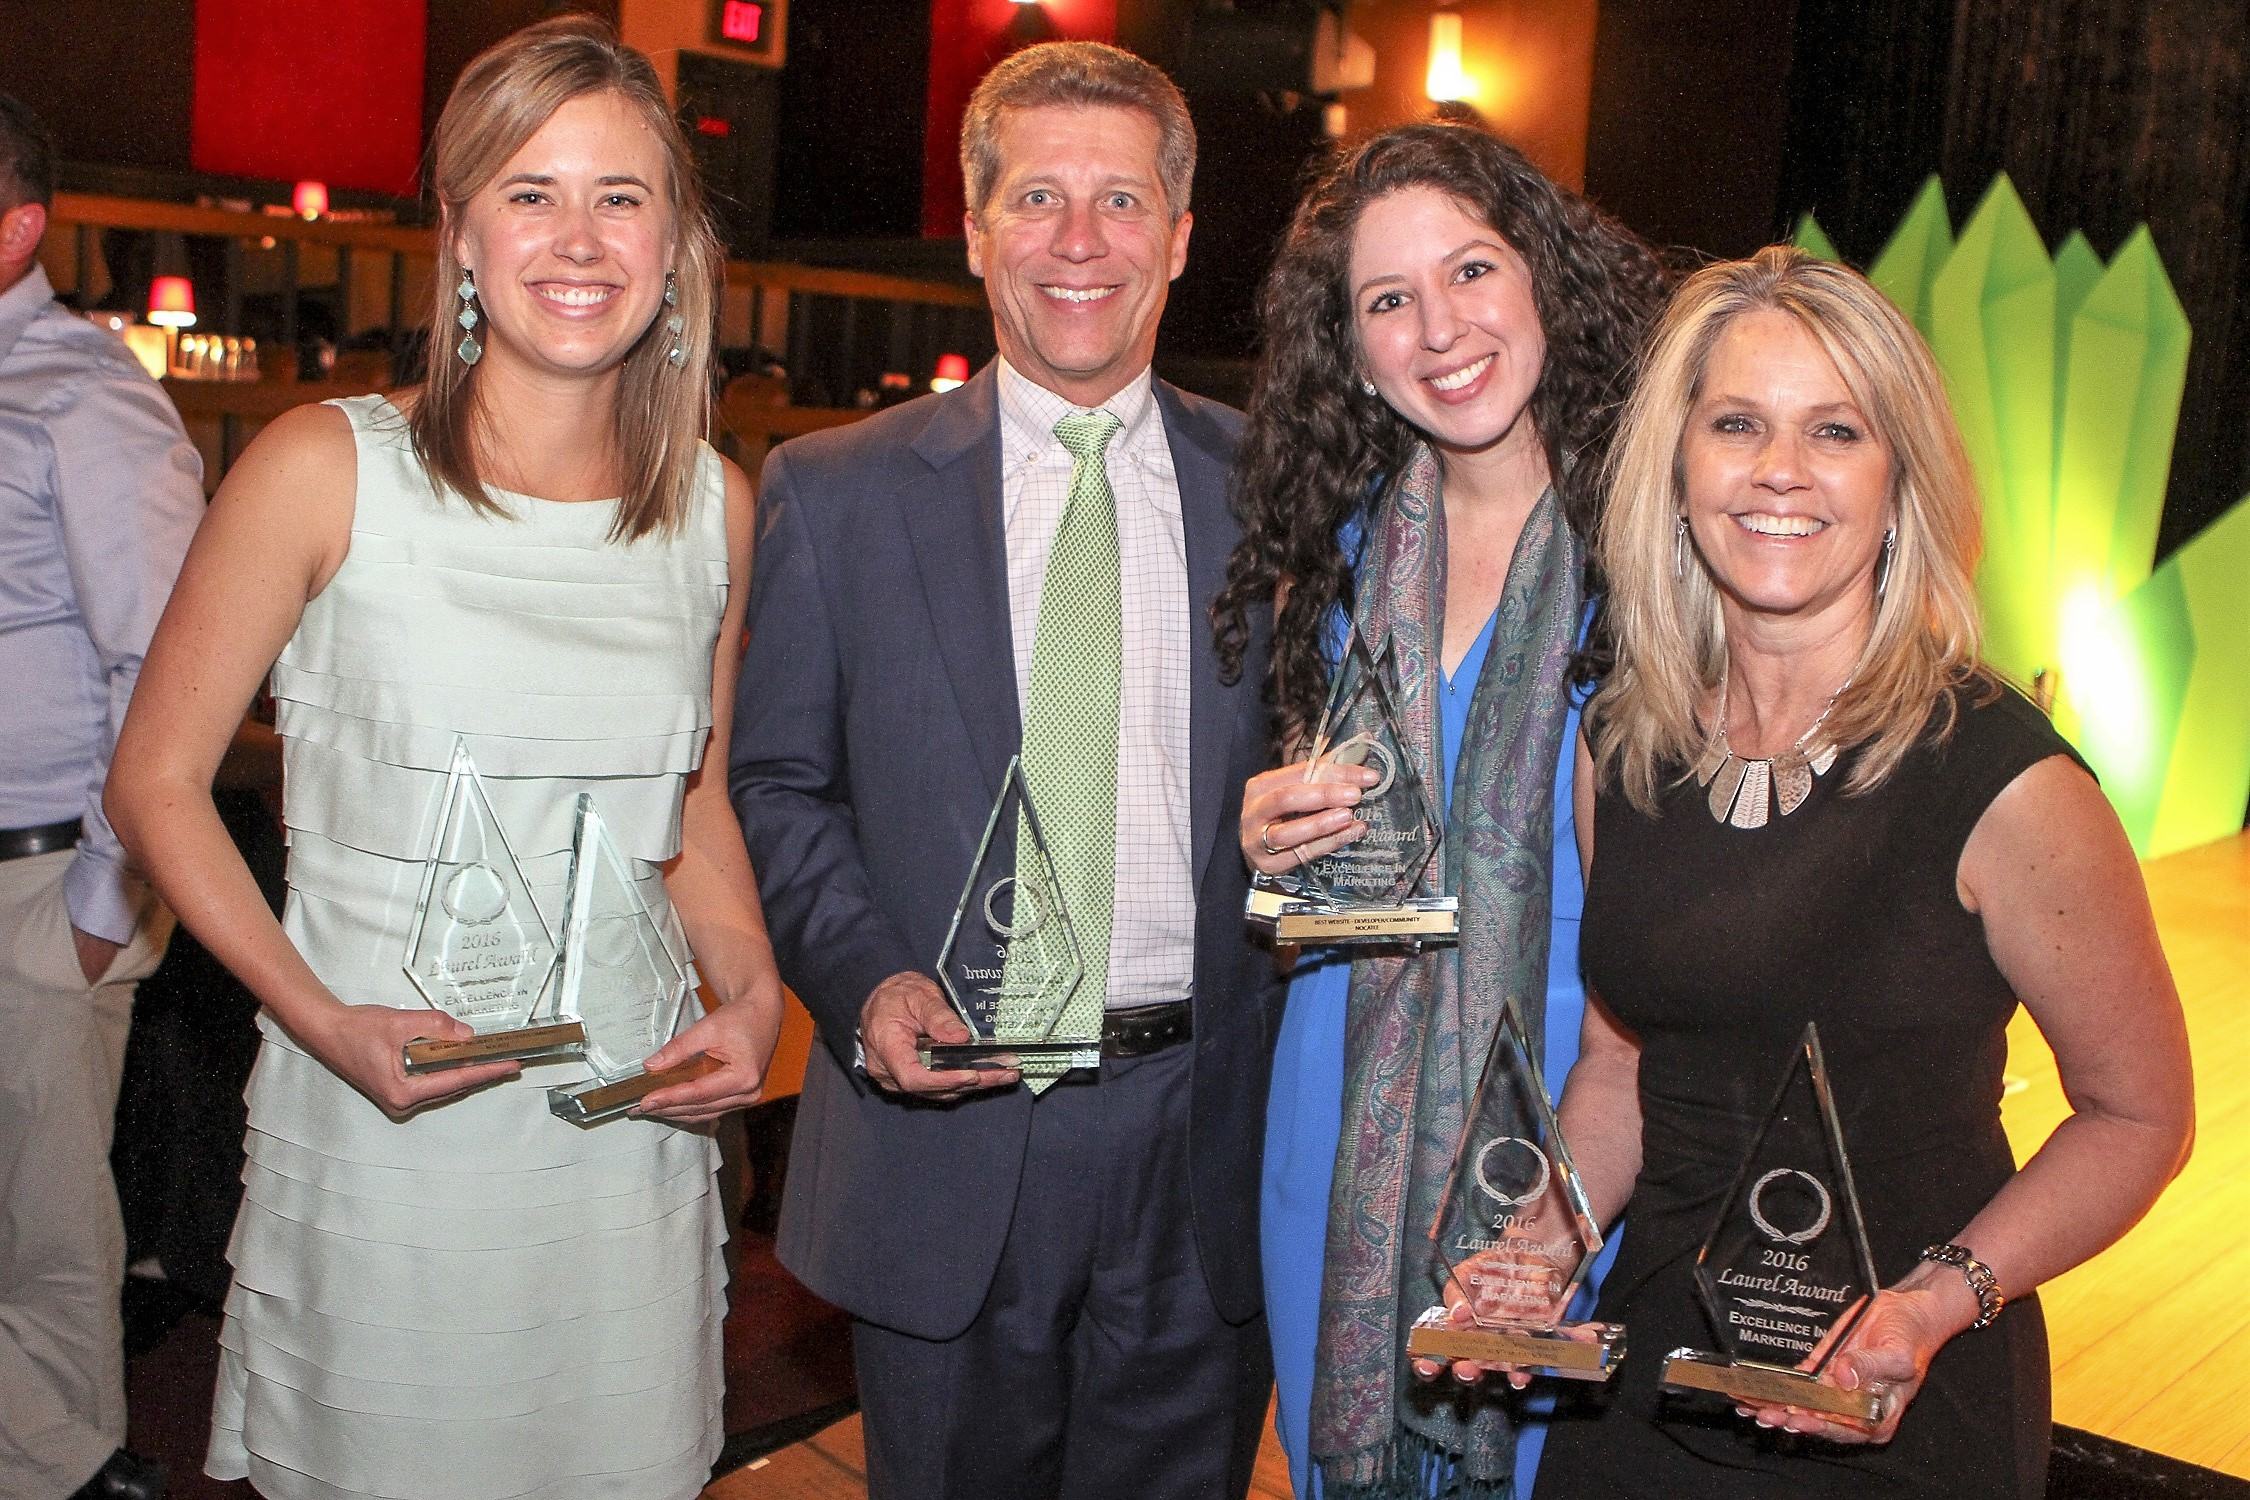 The PARC Group President Rick Ray and the firm's marketing team display some of the awards Nocatee's master developer received at the recent Laurel Awards.